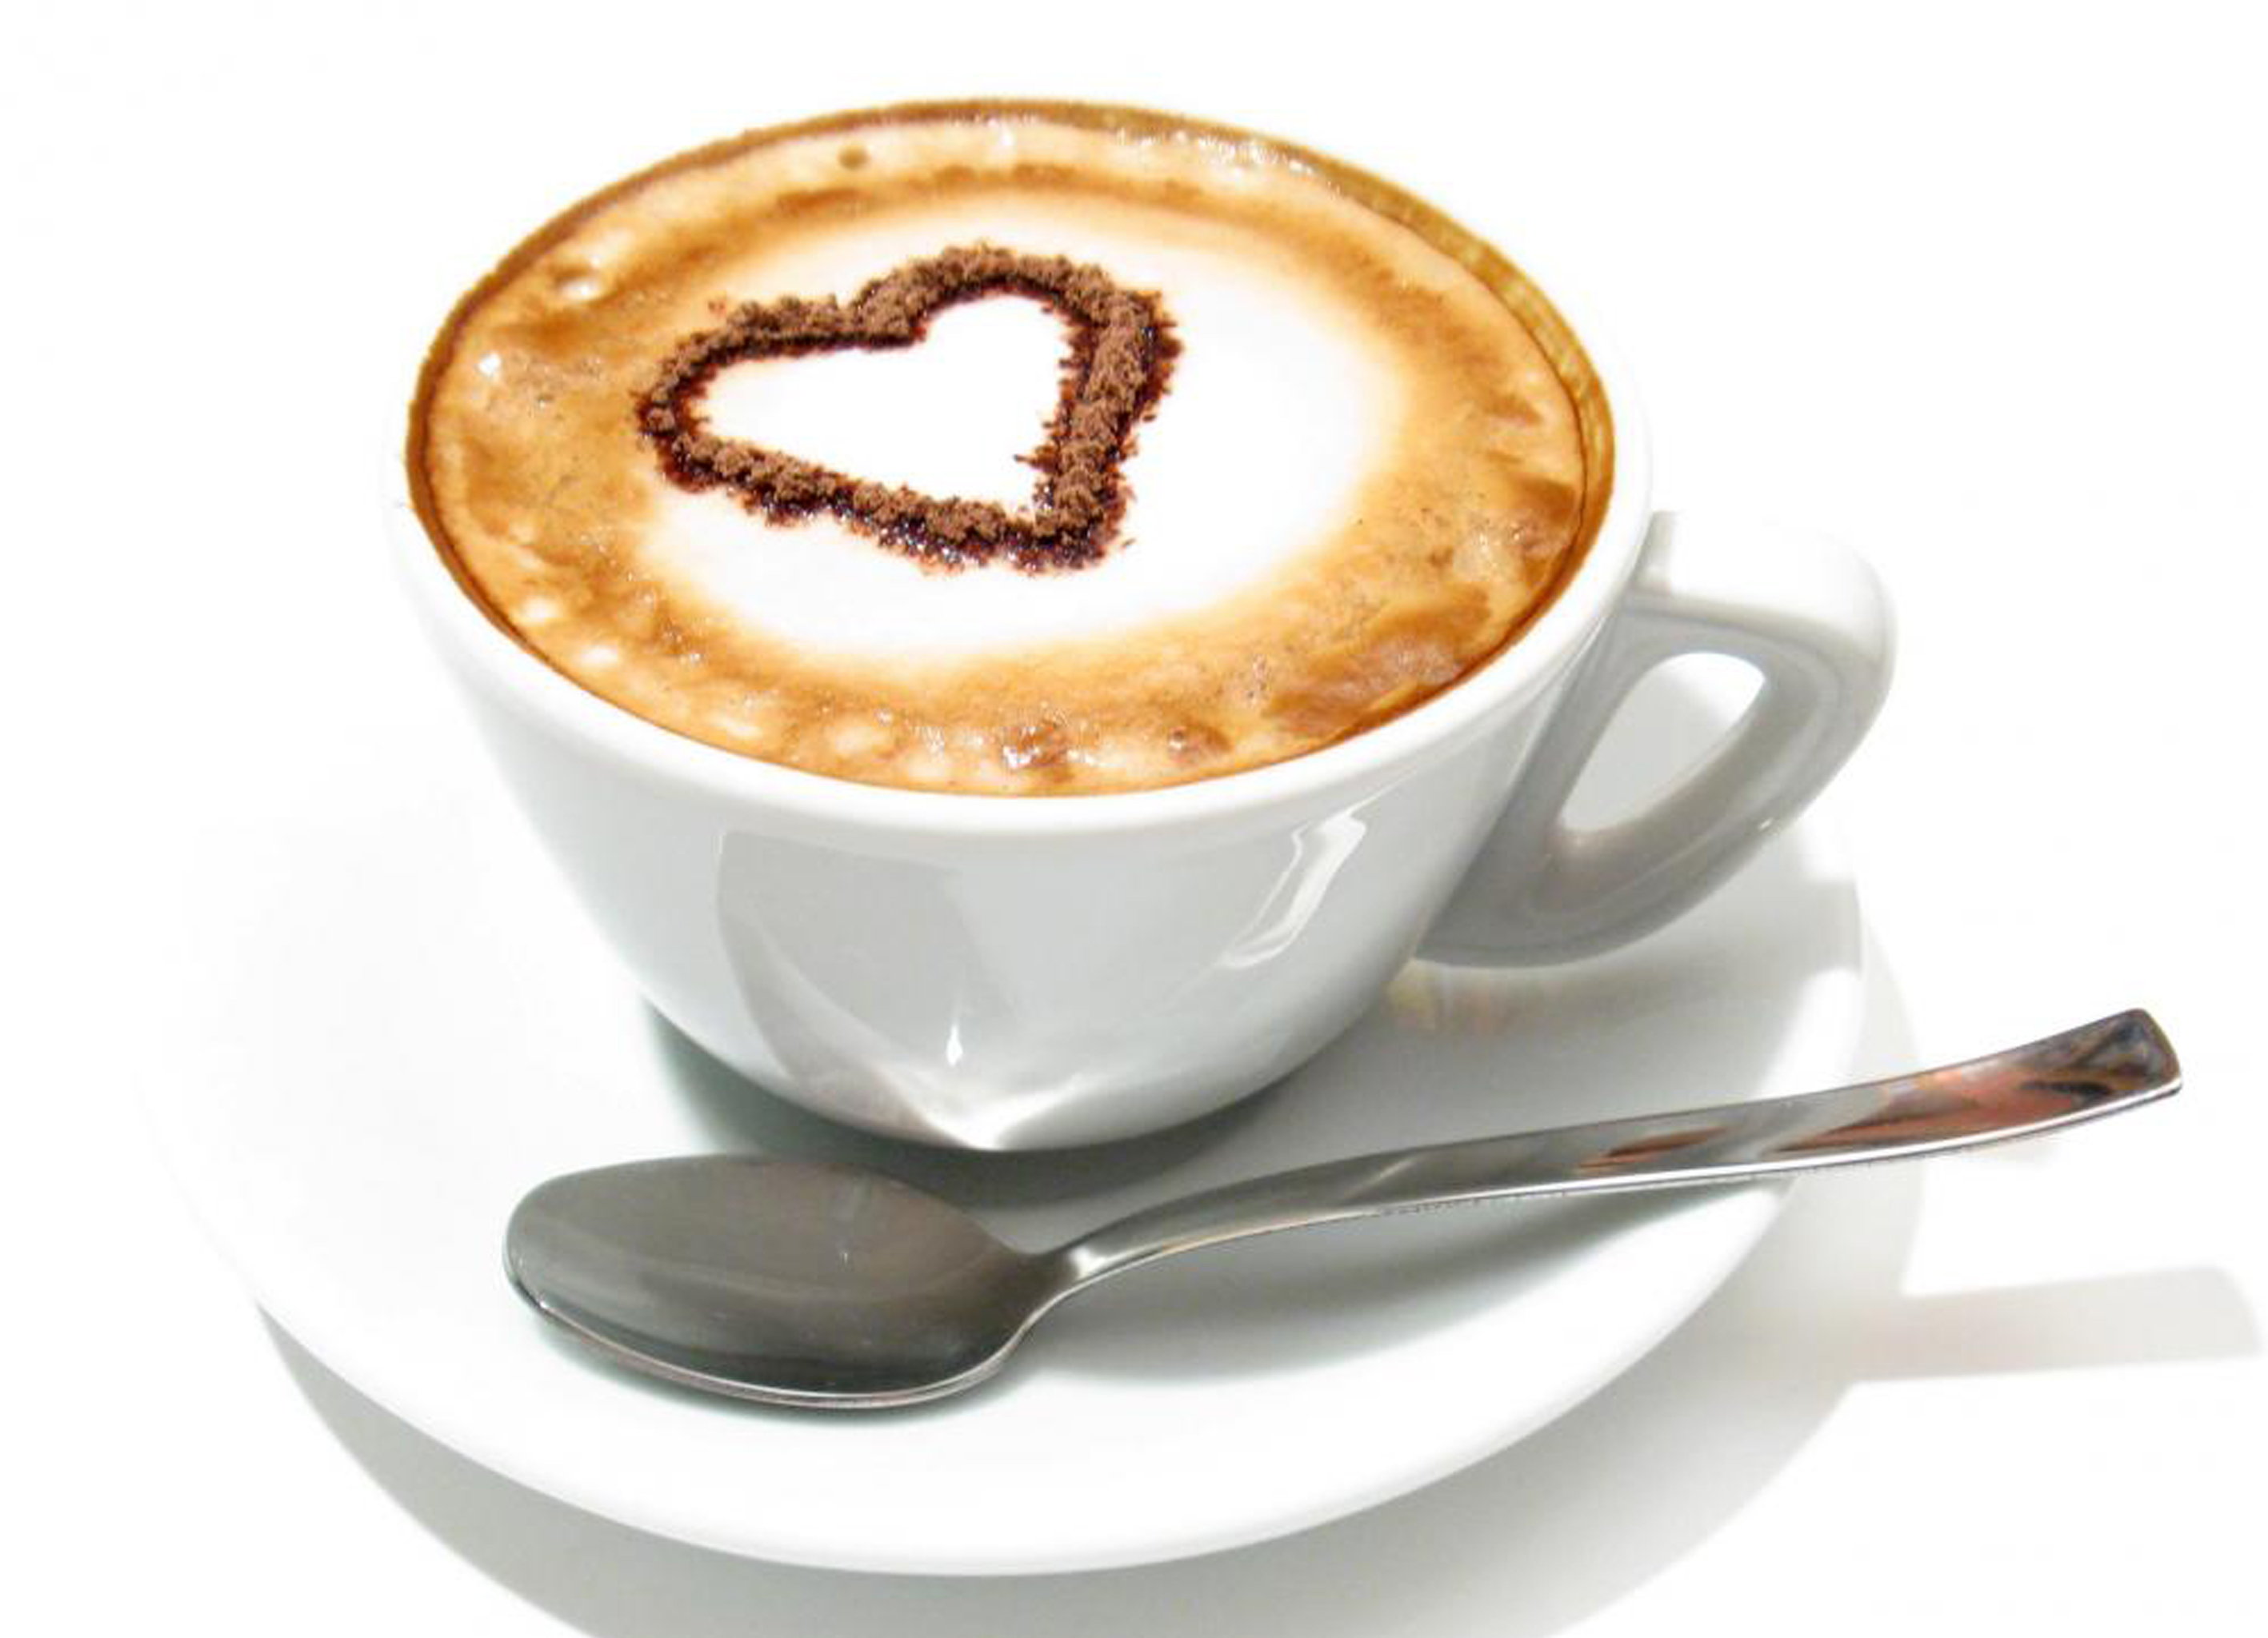 Chocolate Heart on Coffee 183.49 Kb